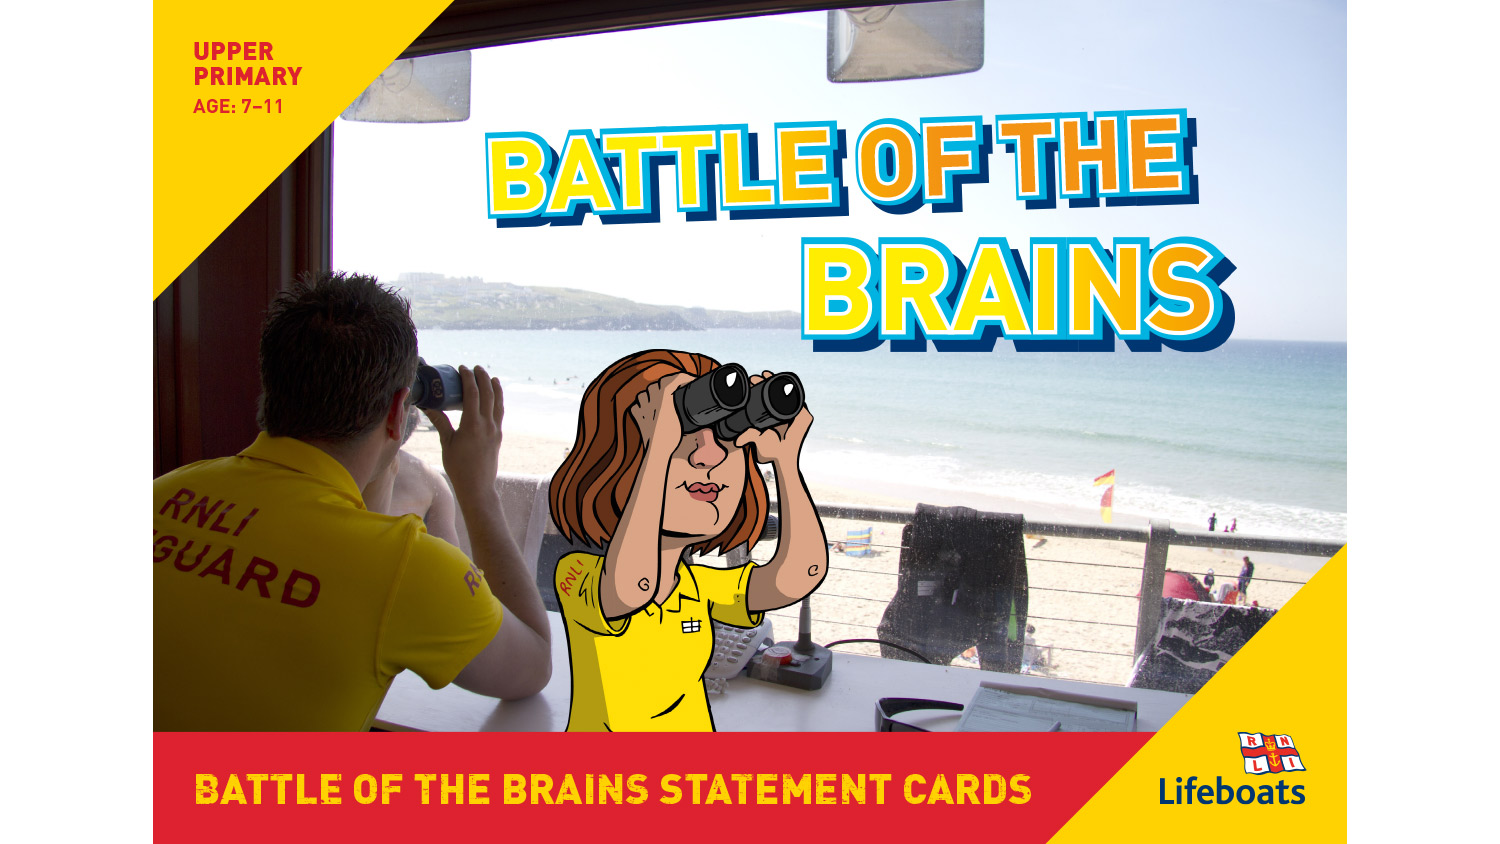 RNLI Battle Of The Brains activity slides